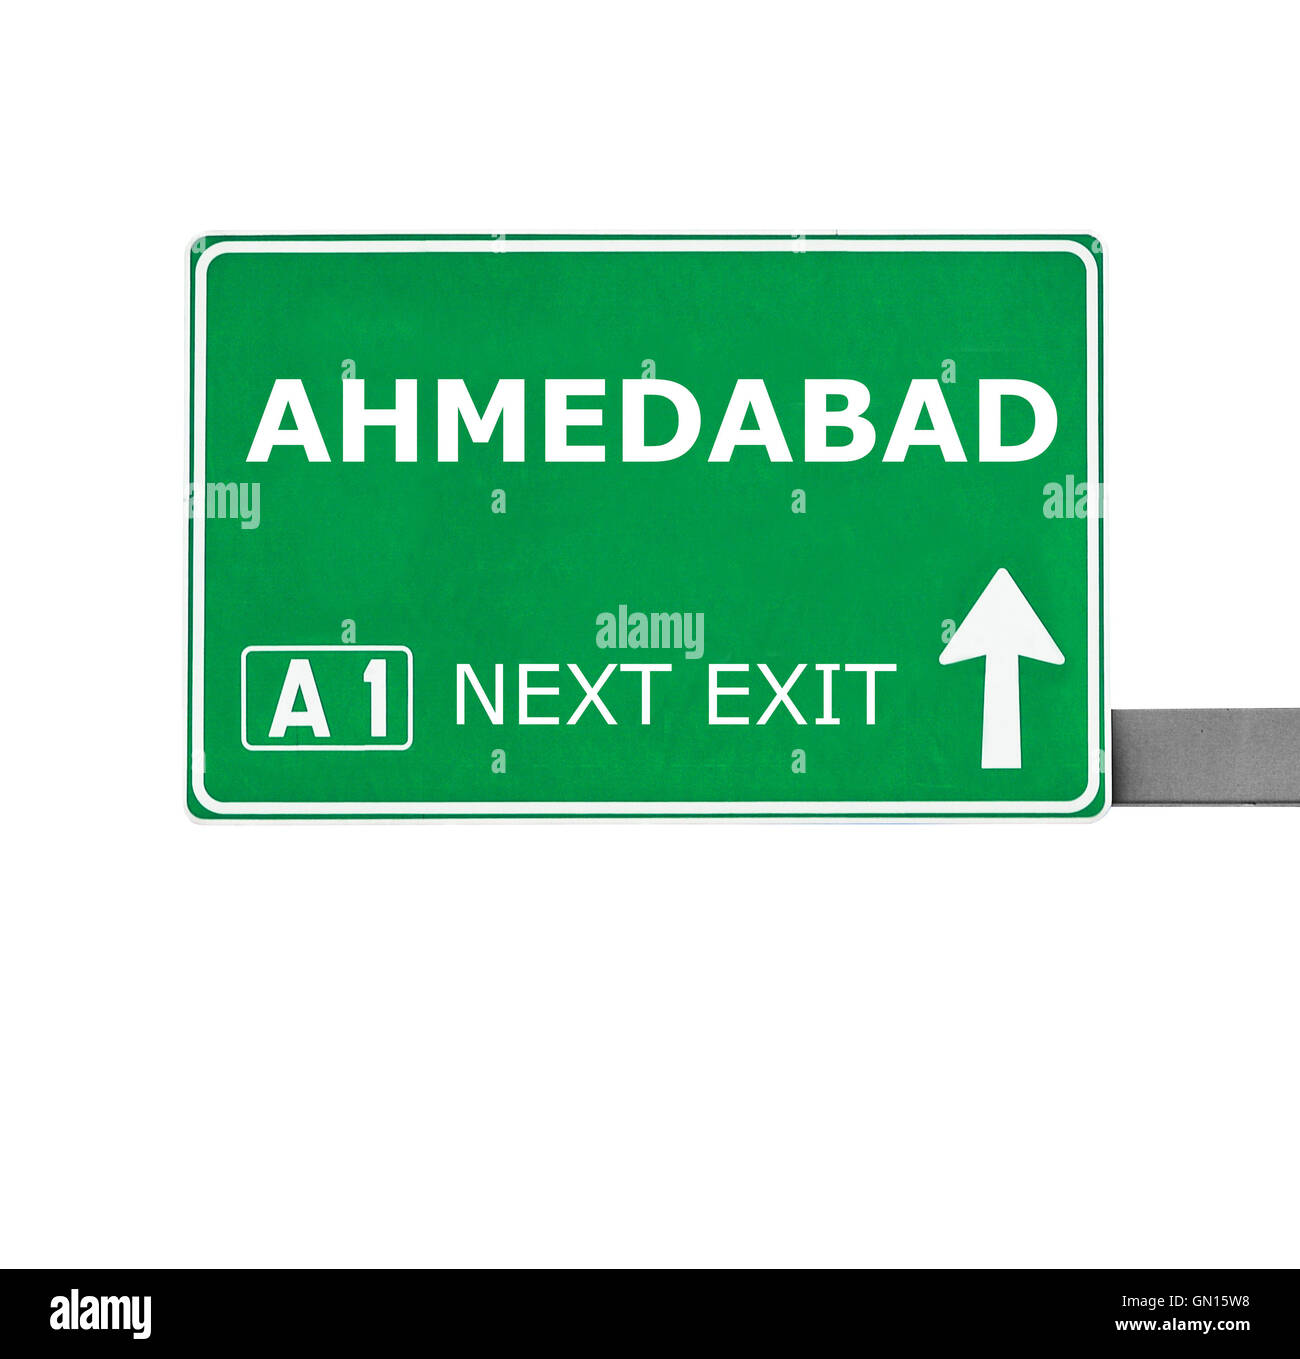 AHMEDABAD road sign isolated on white - Stock Image